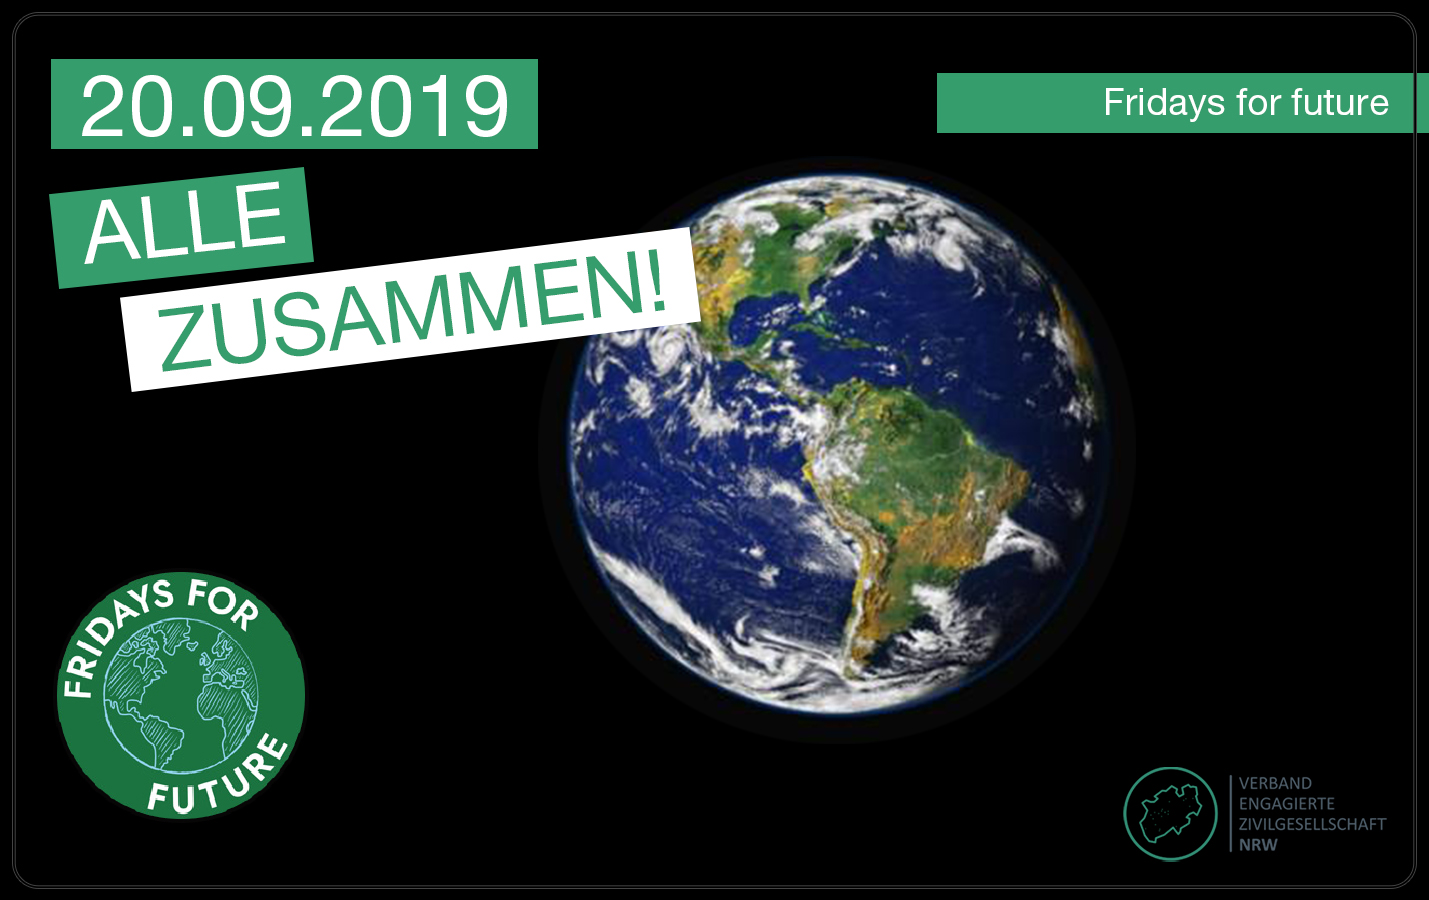 Fridays for future: – Aufruf des VEZ in NRW